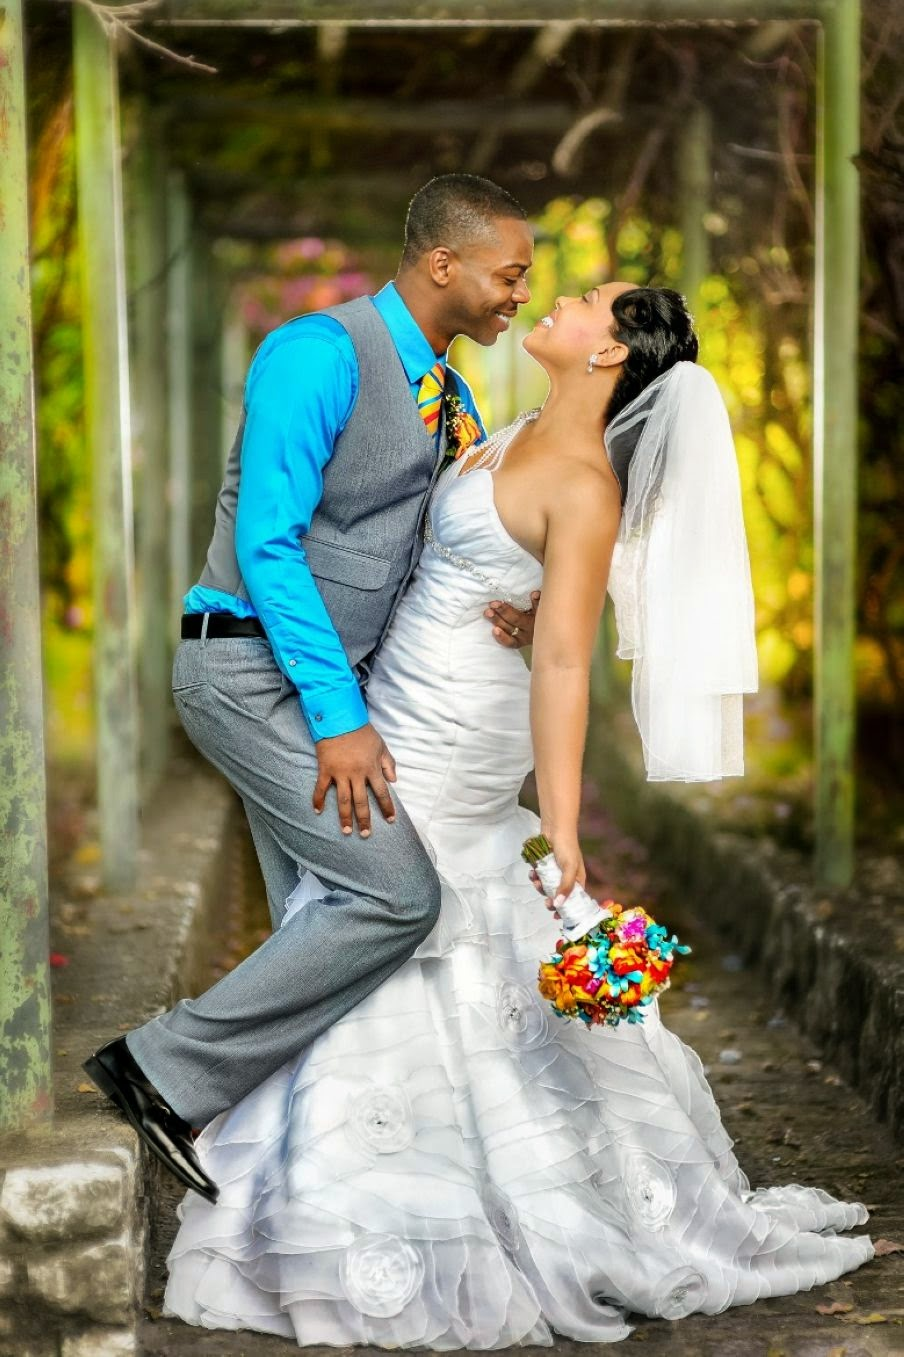 Must Have' Wedding Photography Shots in Your Wedding Album